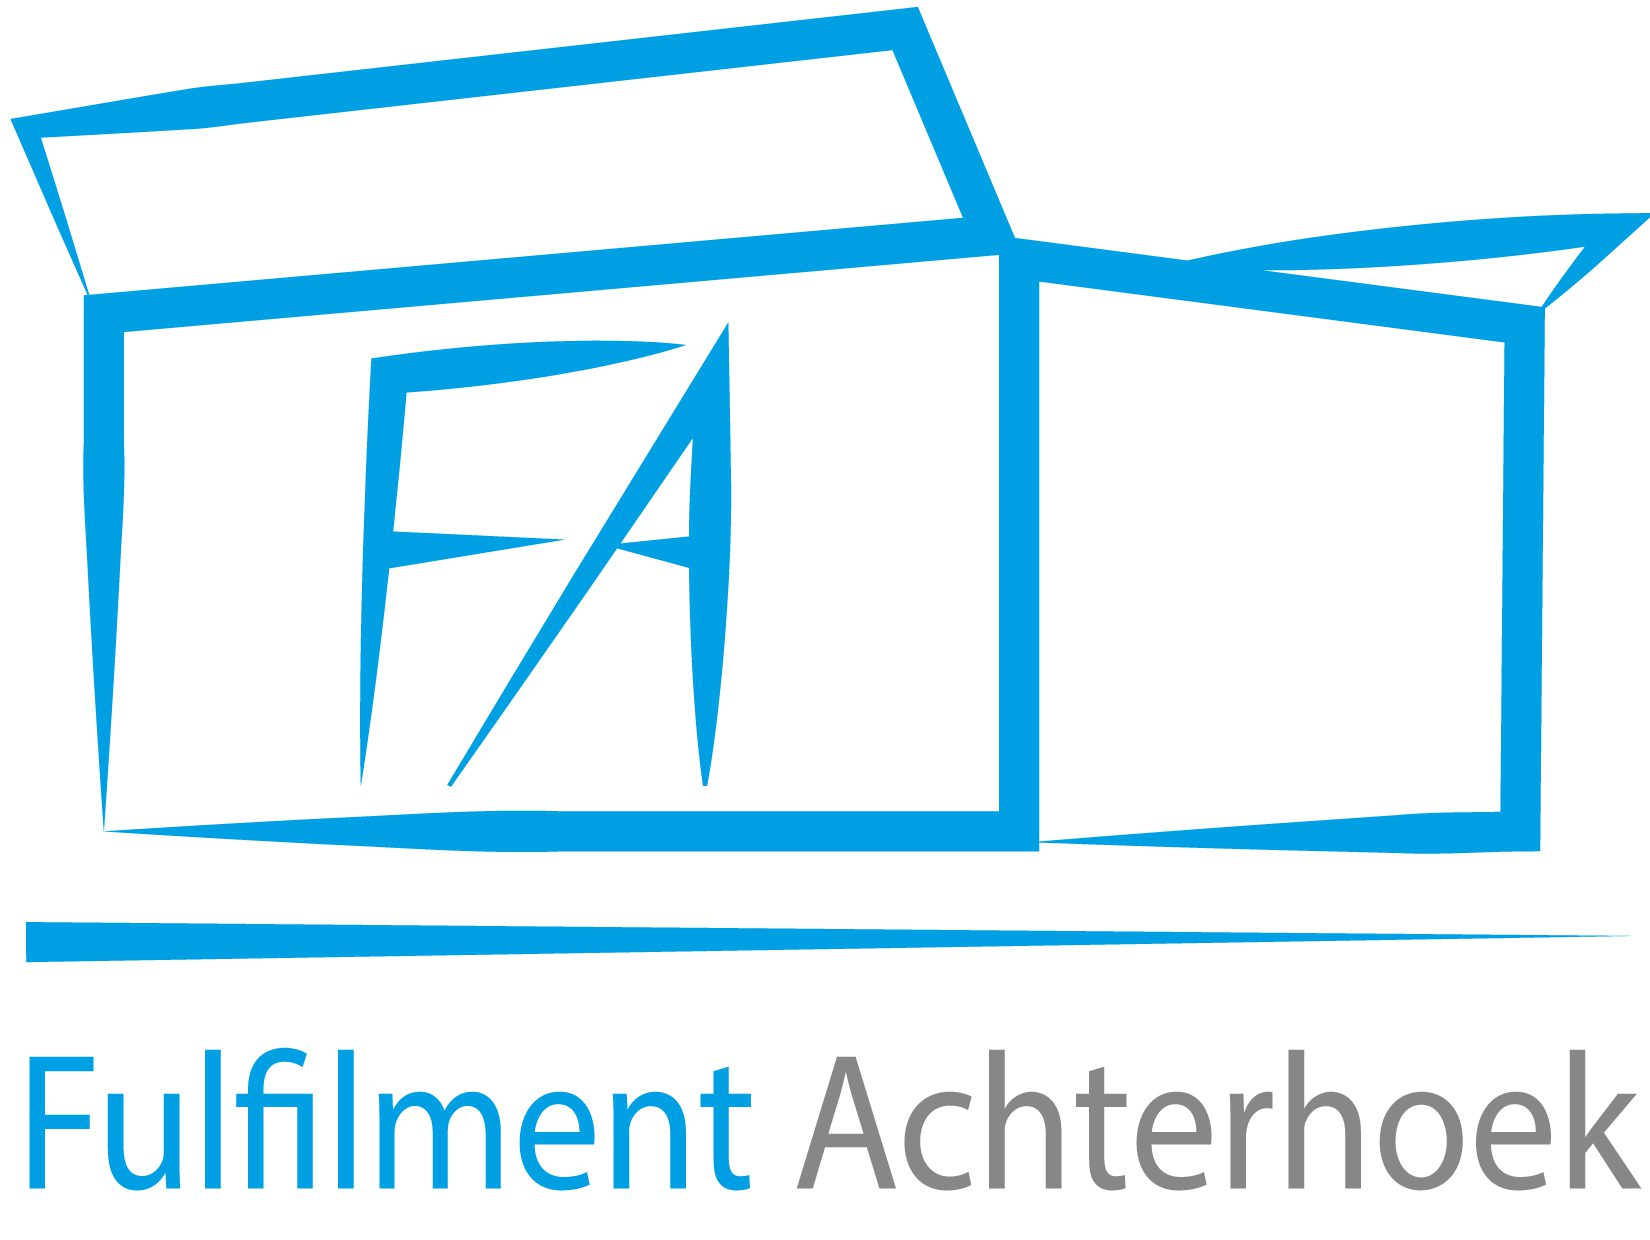 fulfilmentachterhoek